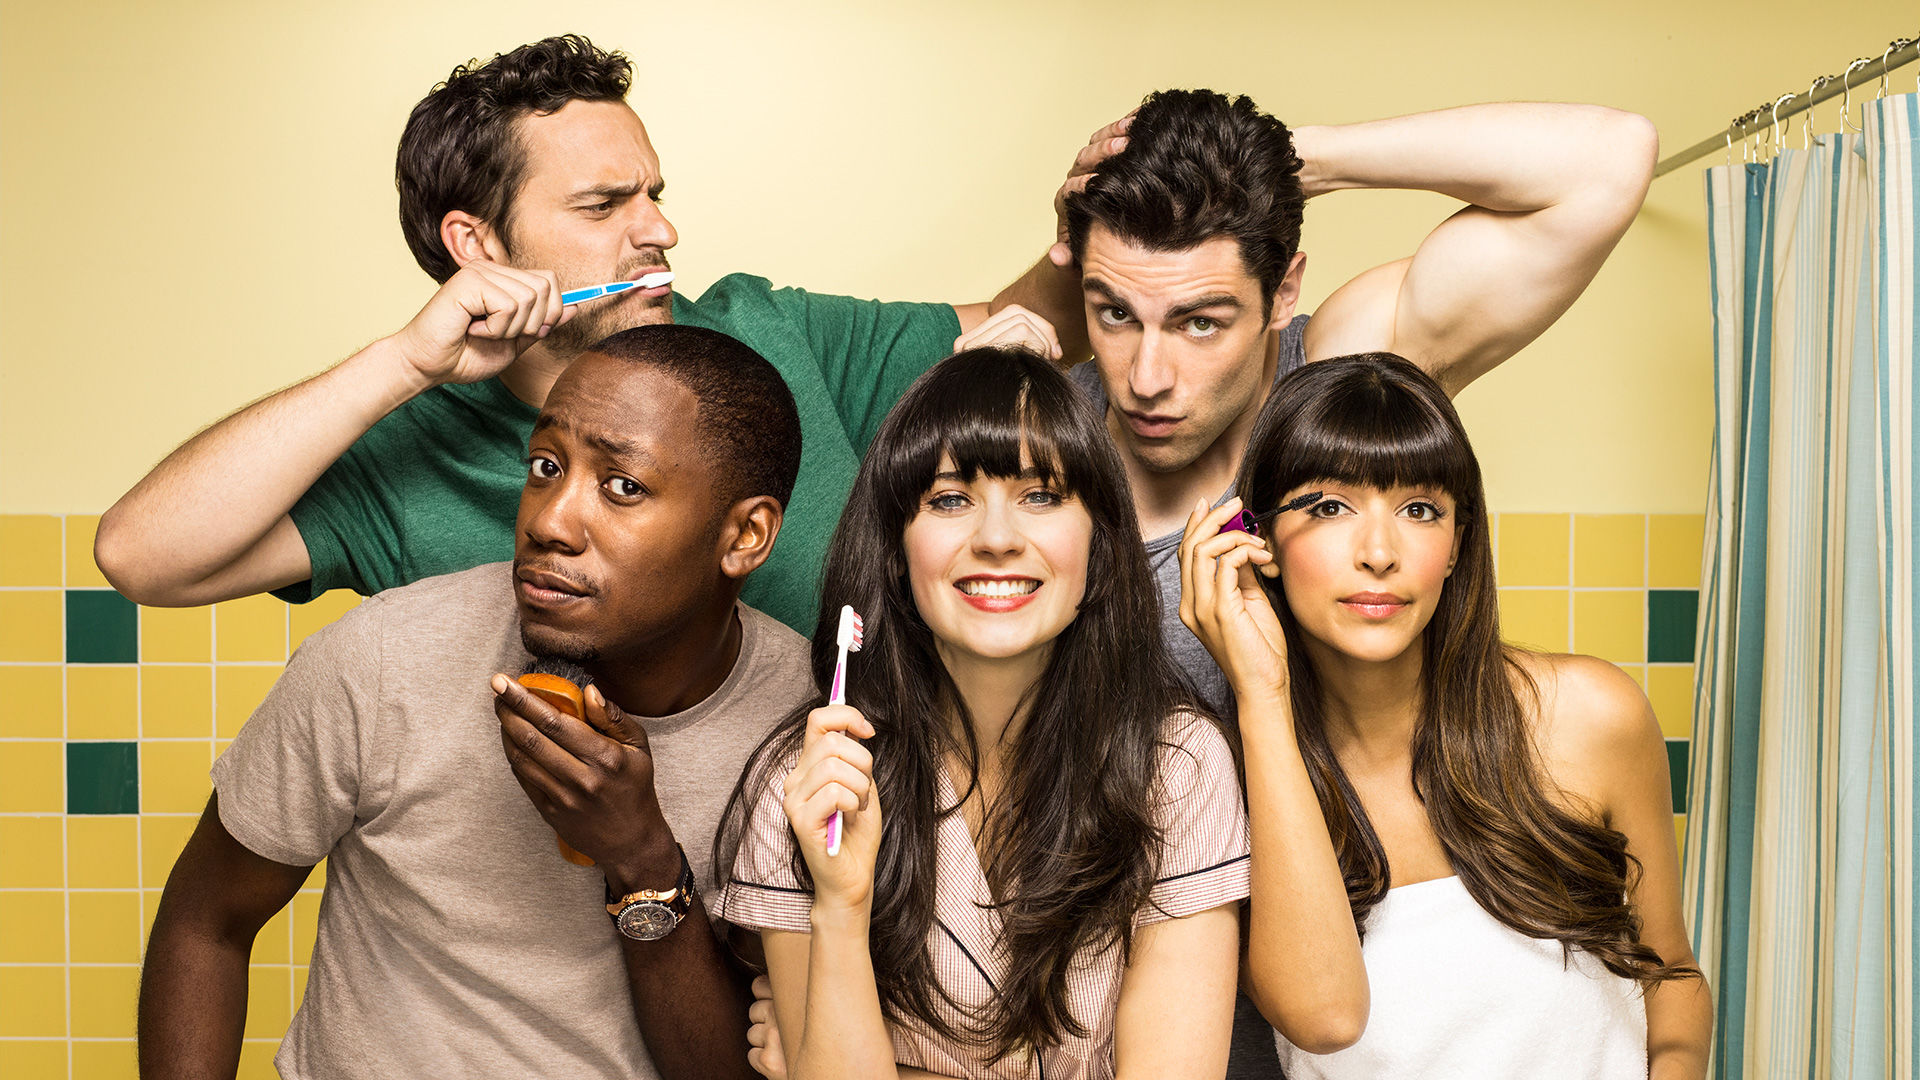 The Increasing Commercialization of New Girl Image #16589